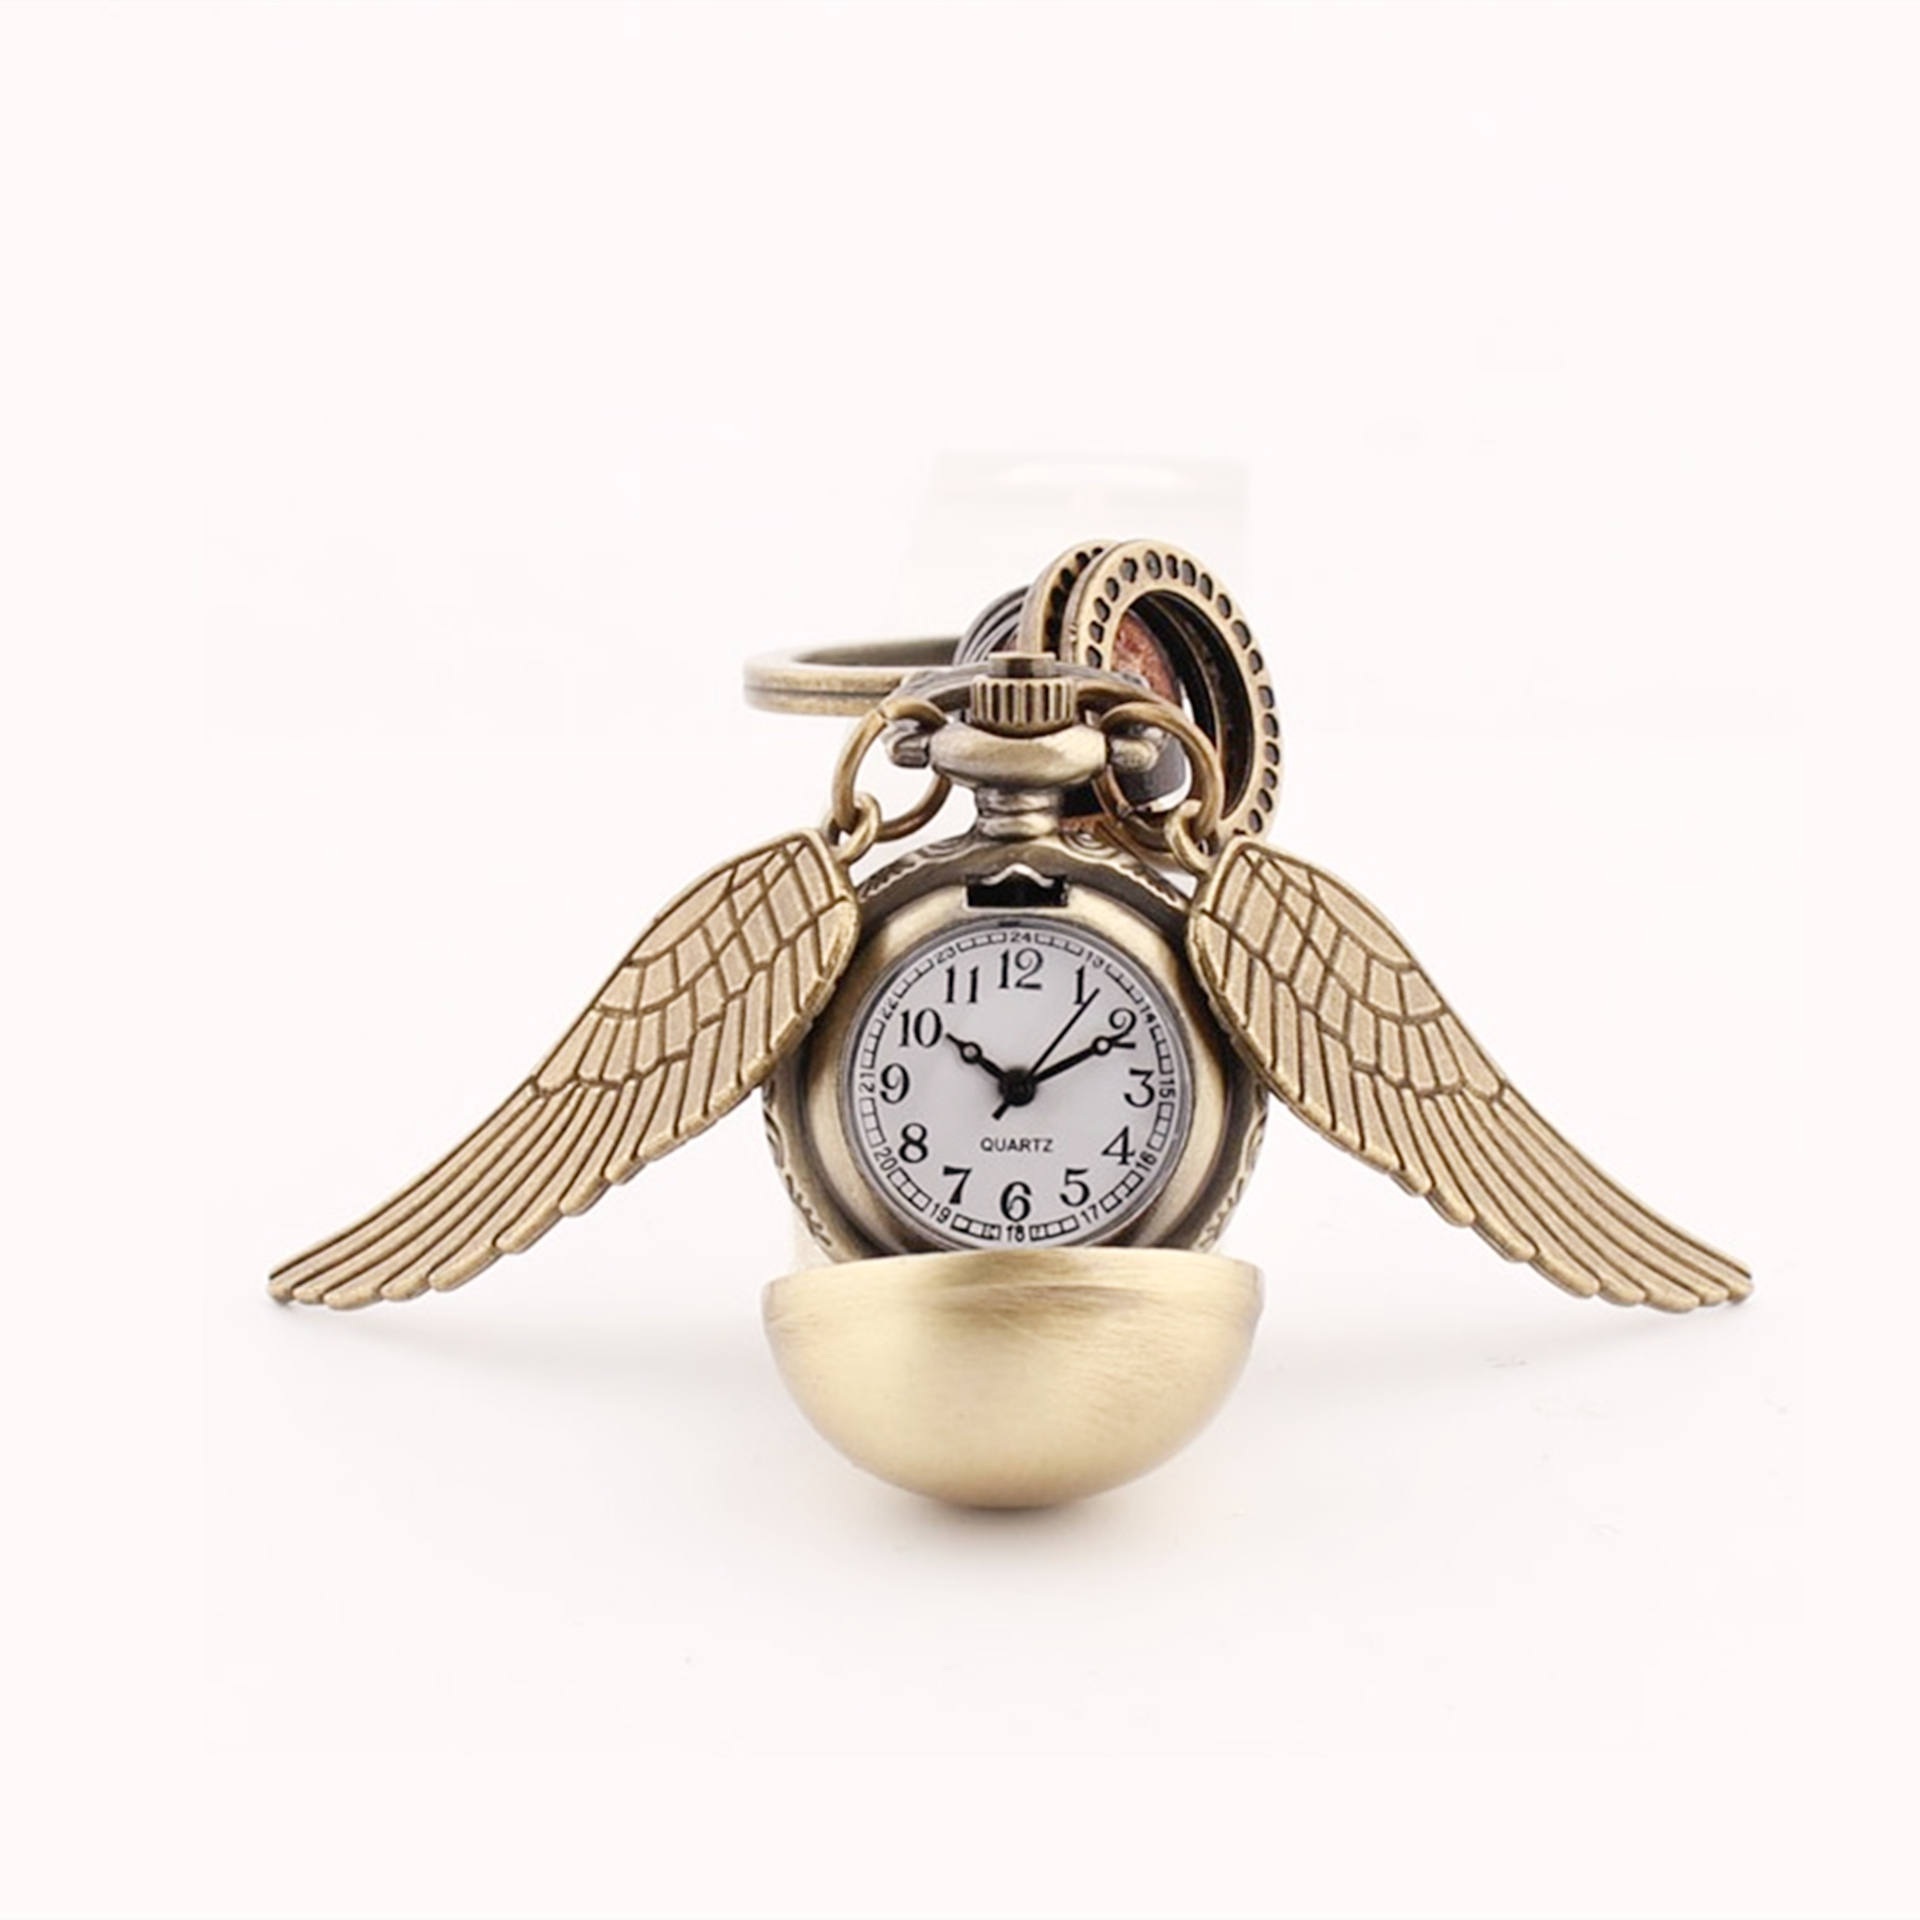 Angel Wing Keychain Slytherin Hufflepuff Time Turner Watch Quidditch Seeker Key Chain Ring witchcraft Accessory For Men Women 1